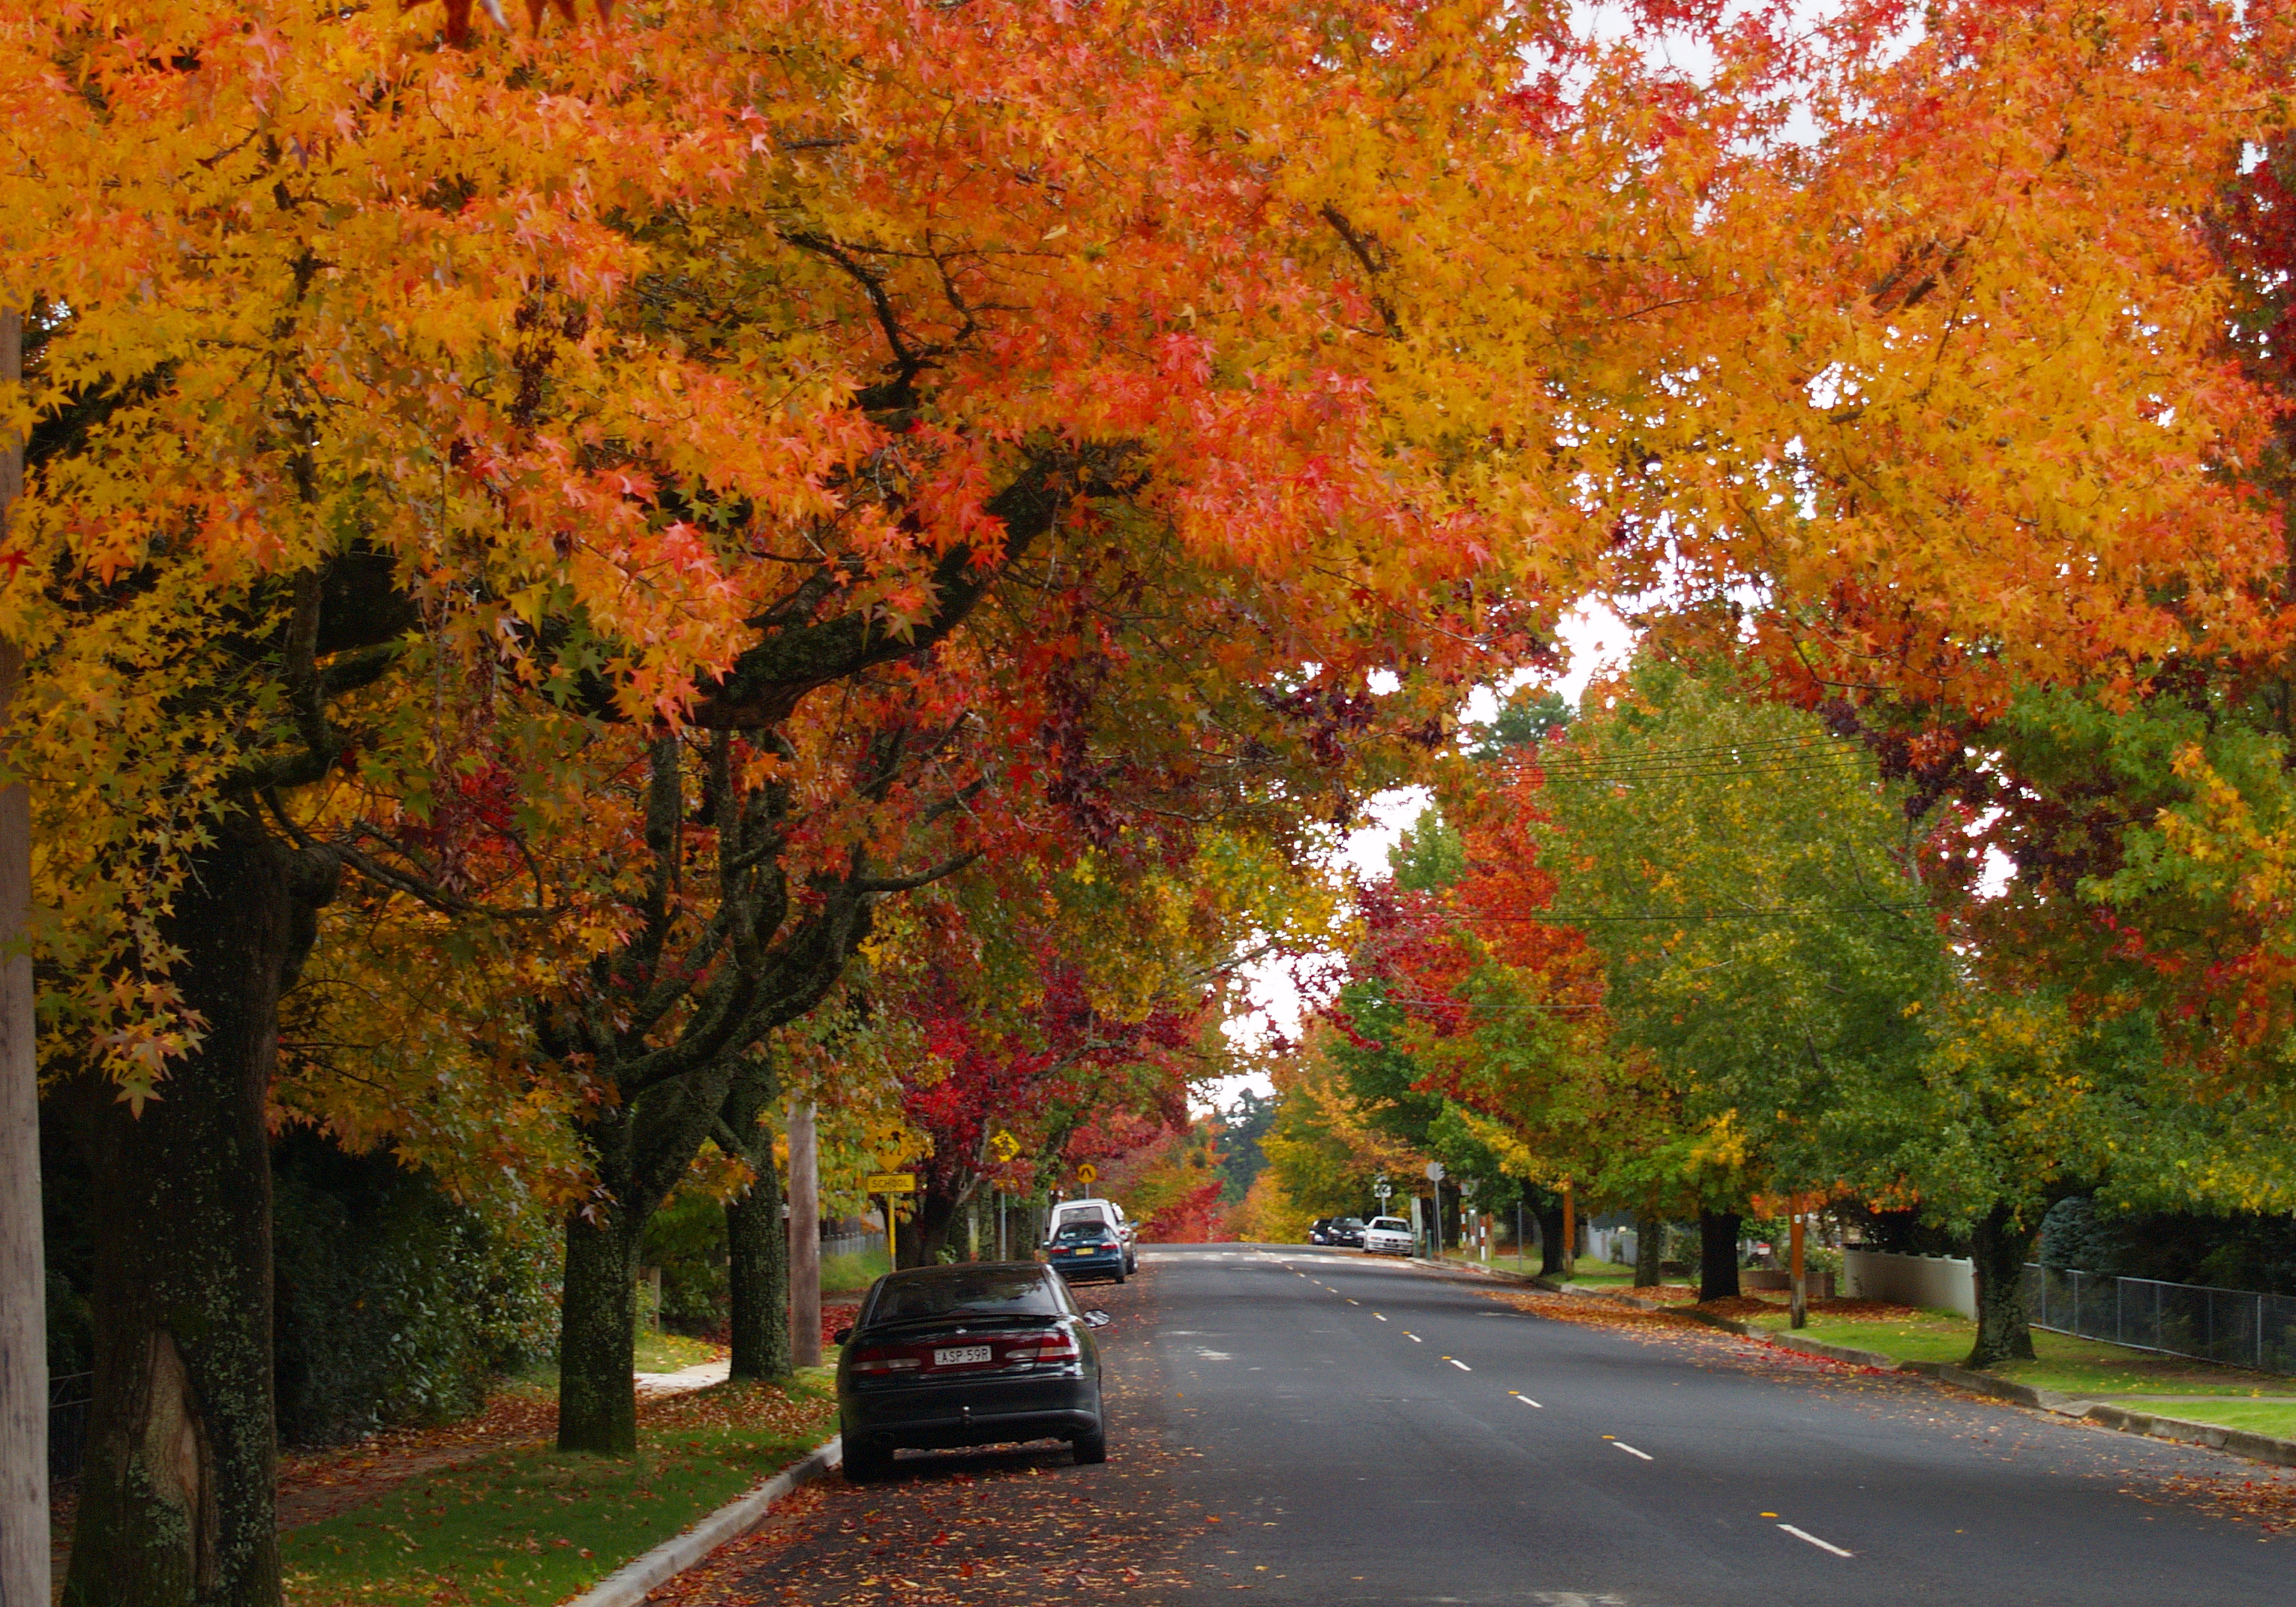 Best places to see autumn leaves in New South Wales